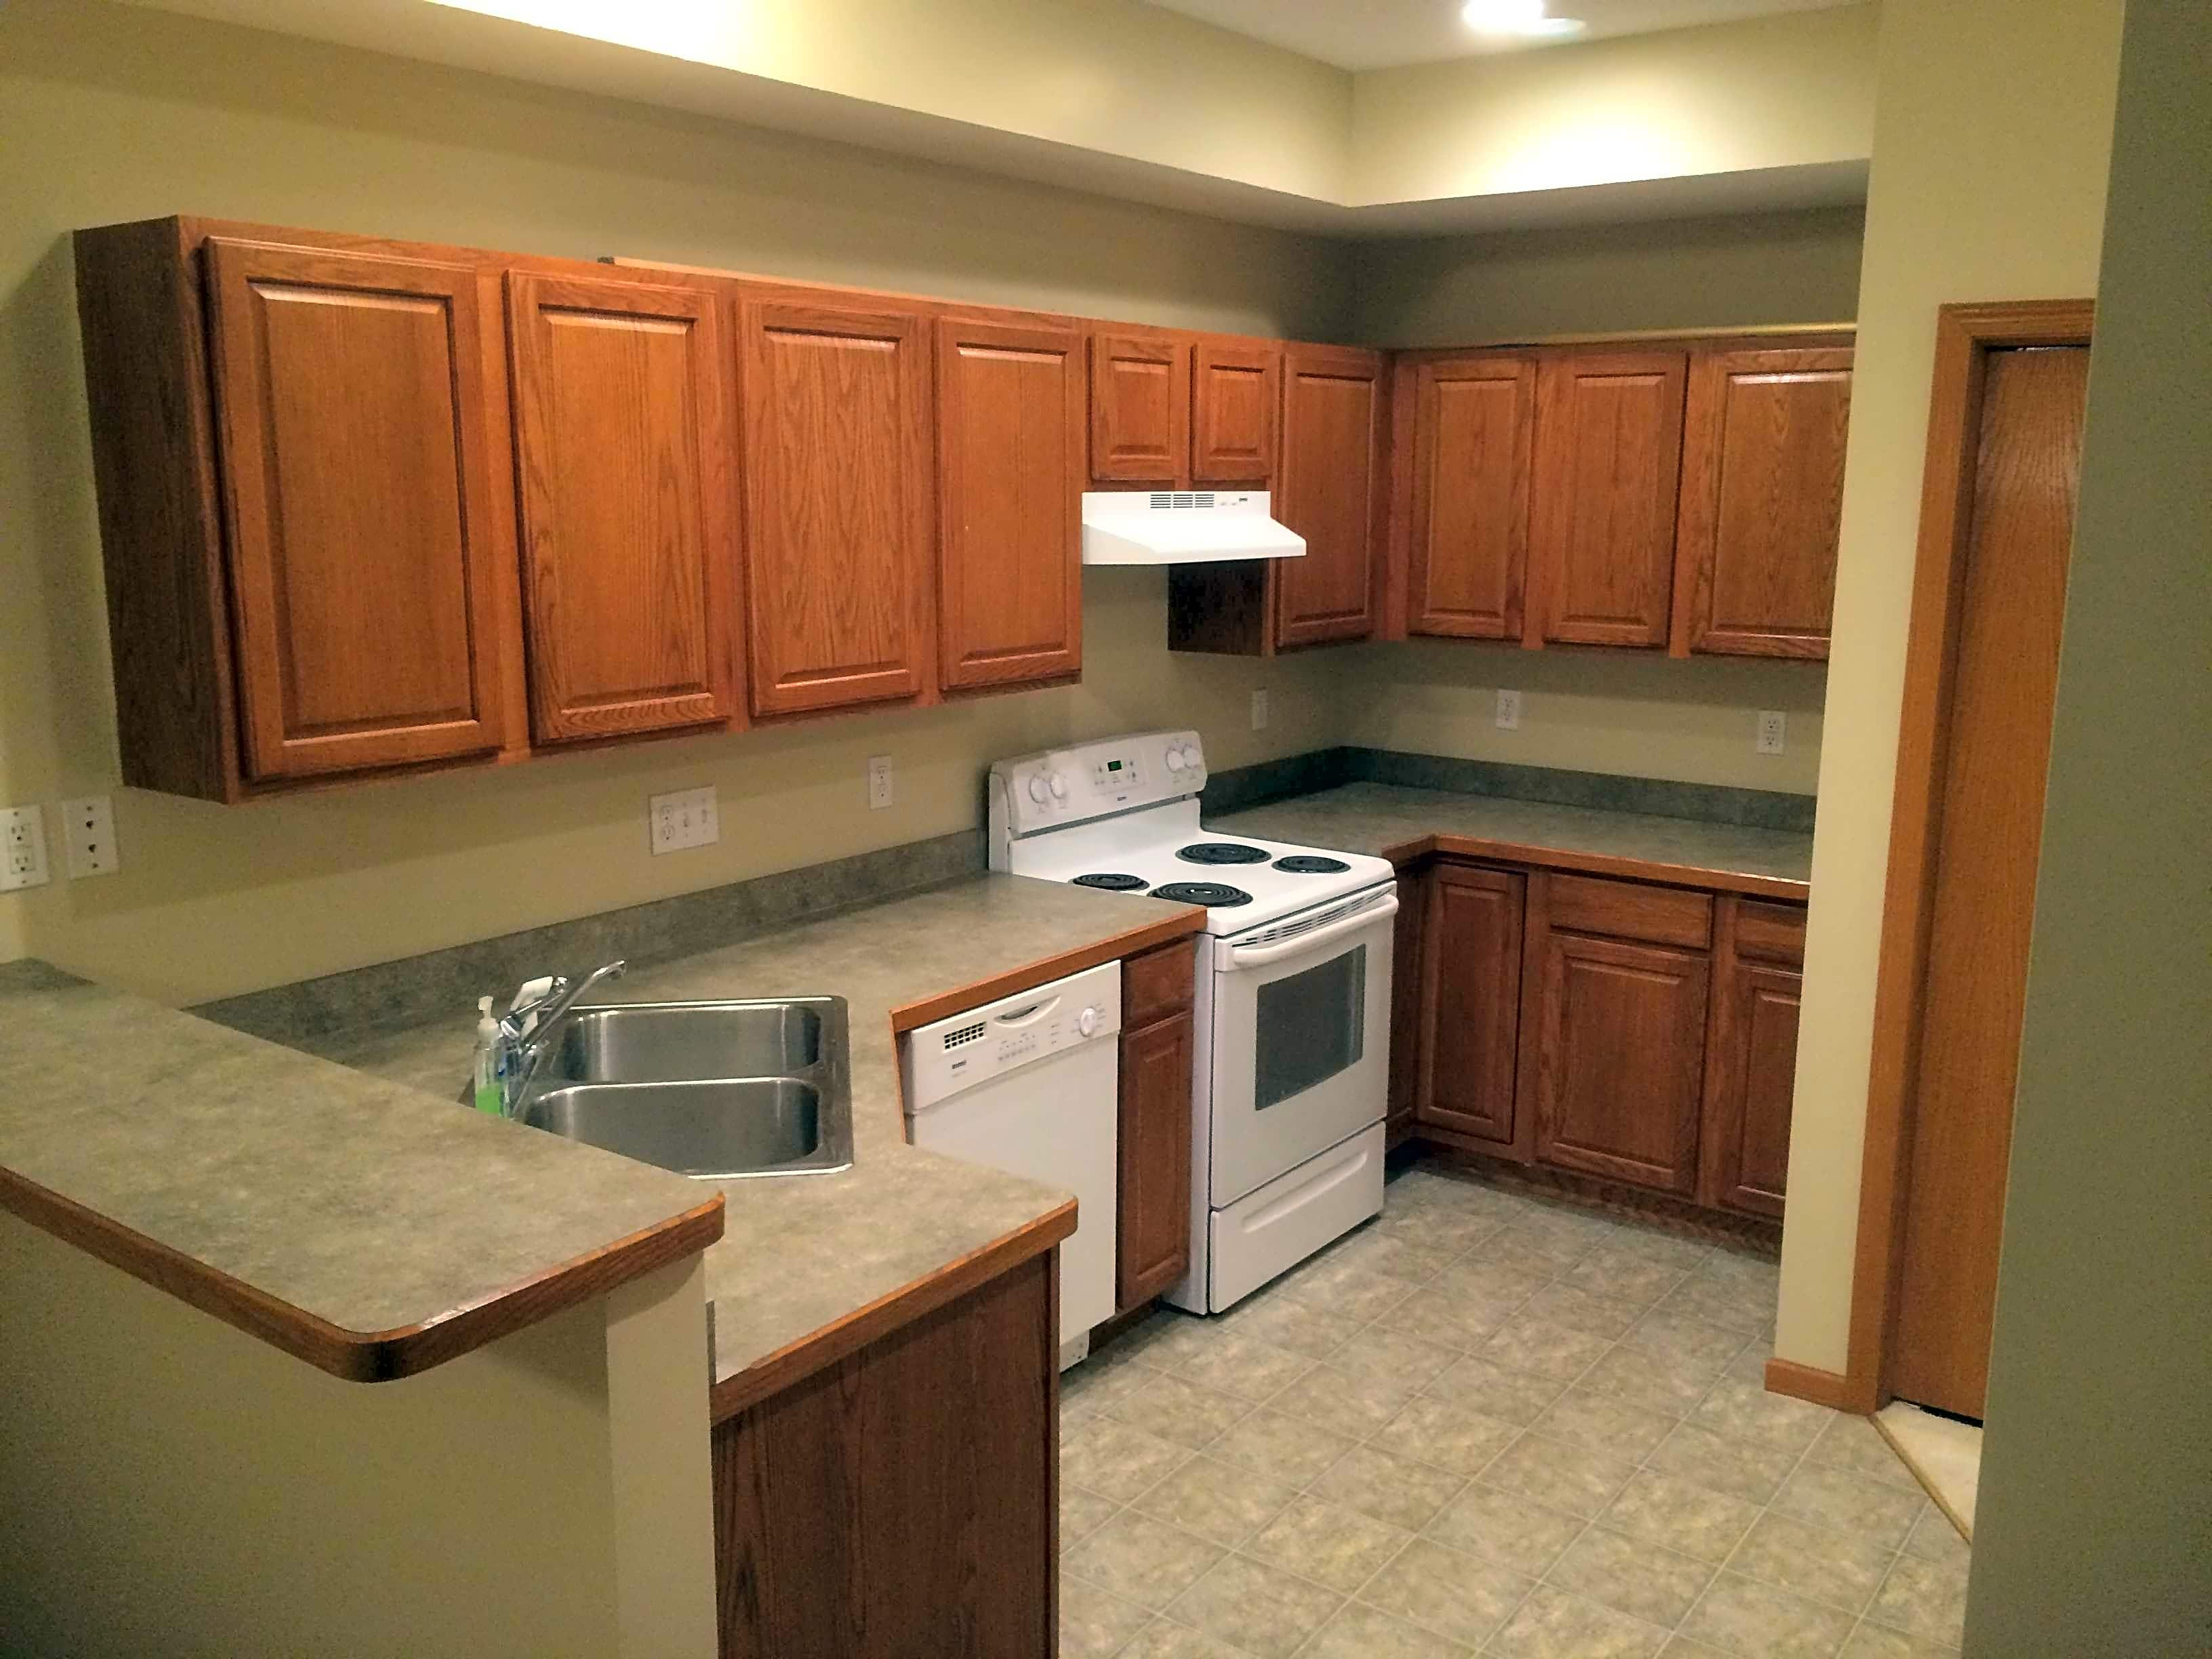 Condo for Rent in Isanti